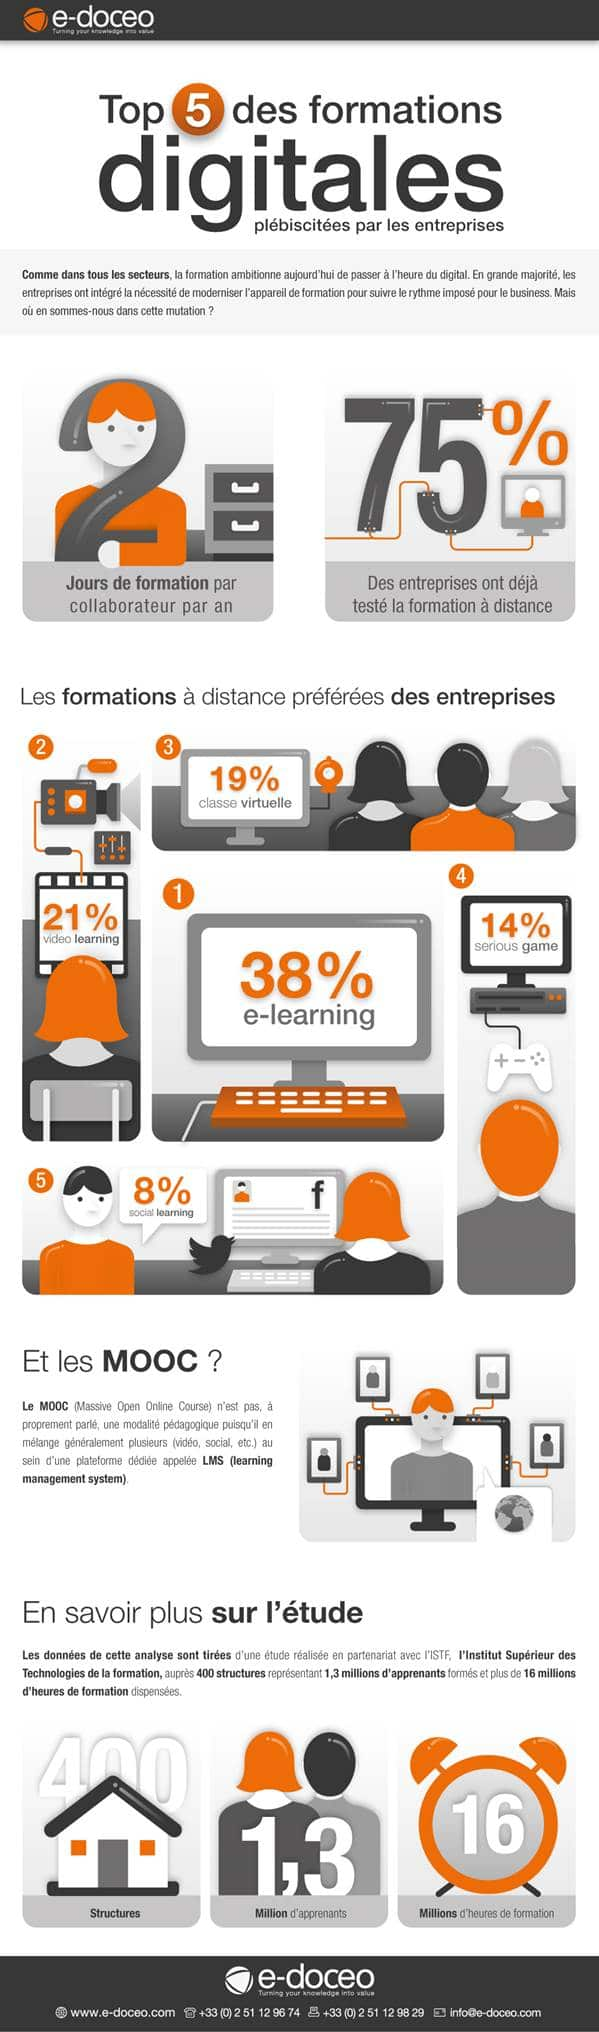 infographie-formations-digitales